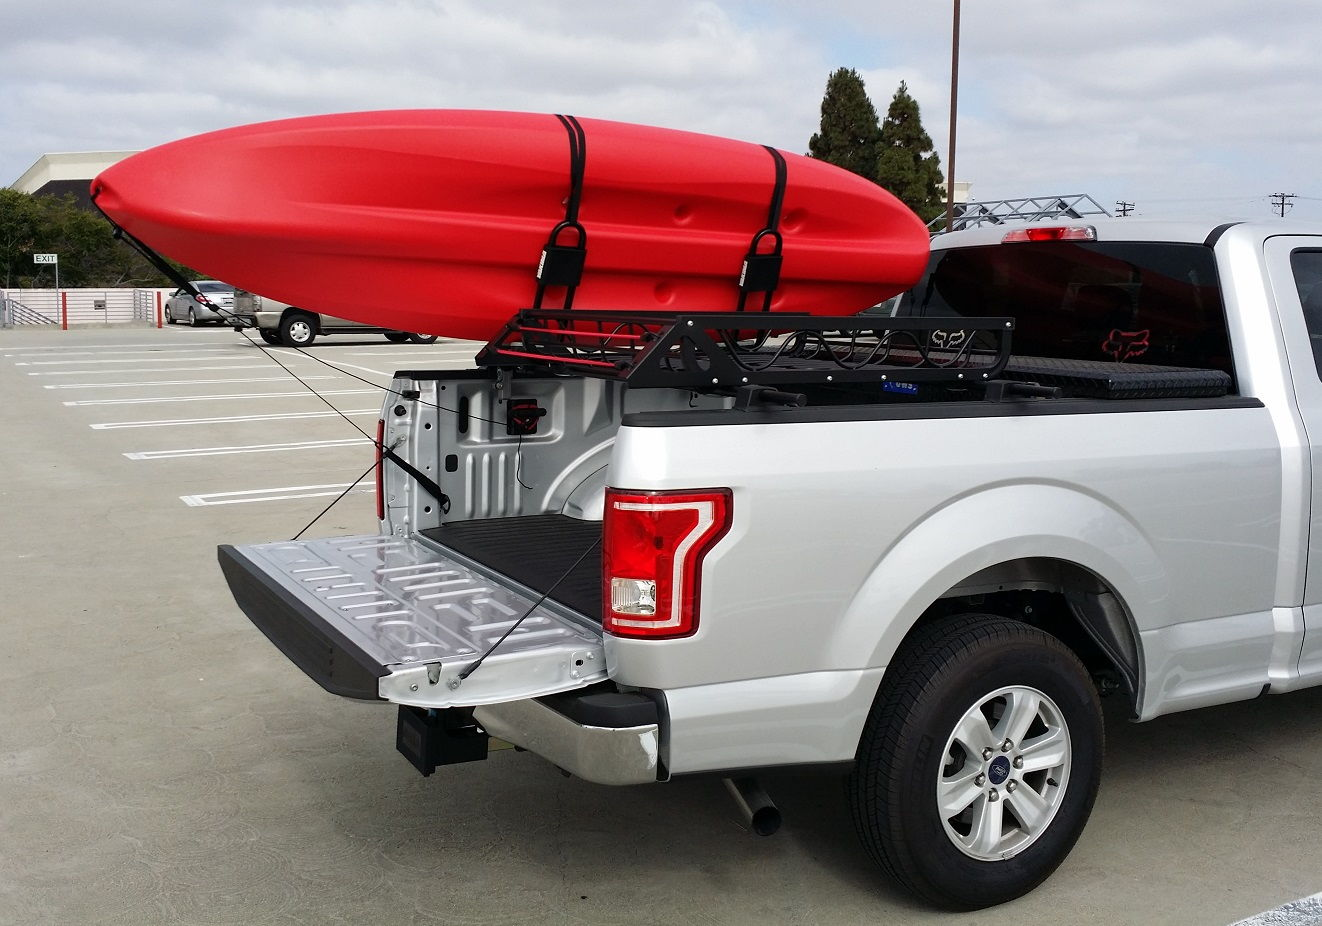 Ford F150 Rack >> What Mods/Changes Have You Done To Your 2015 or 2016??? - Page 223 - Ford F150 Forum - Community ...